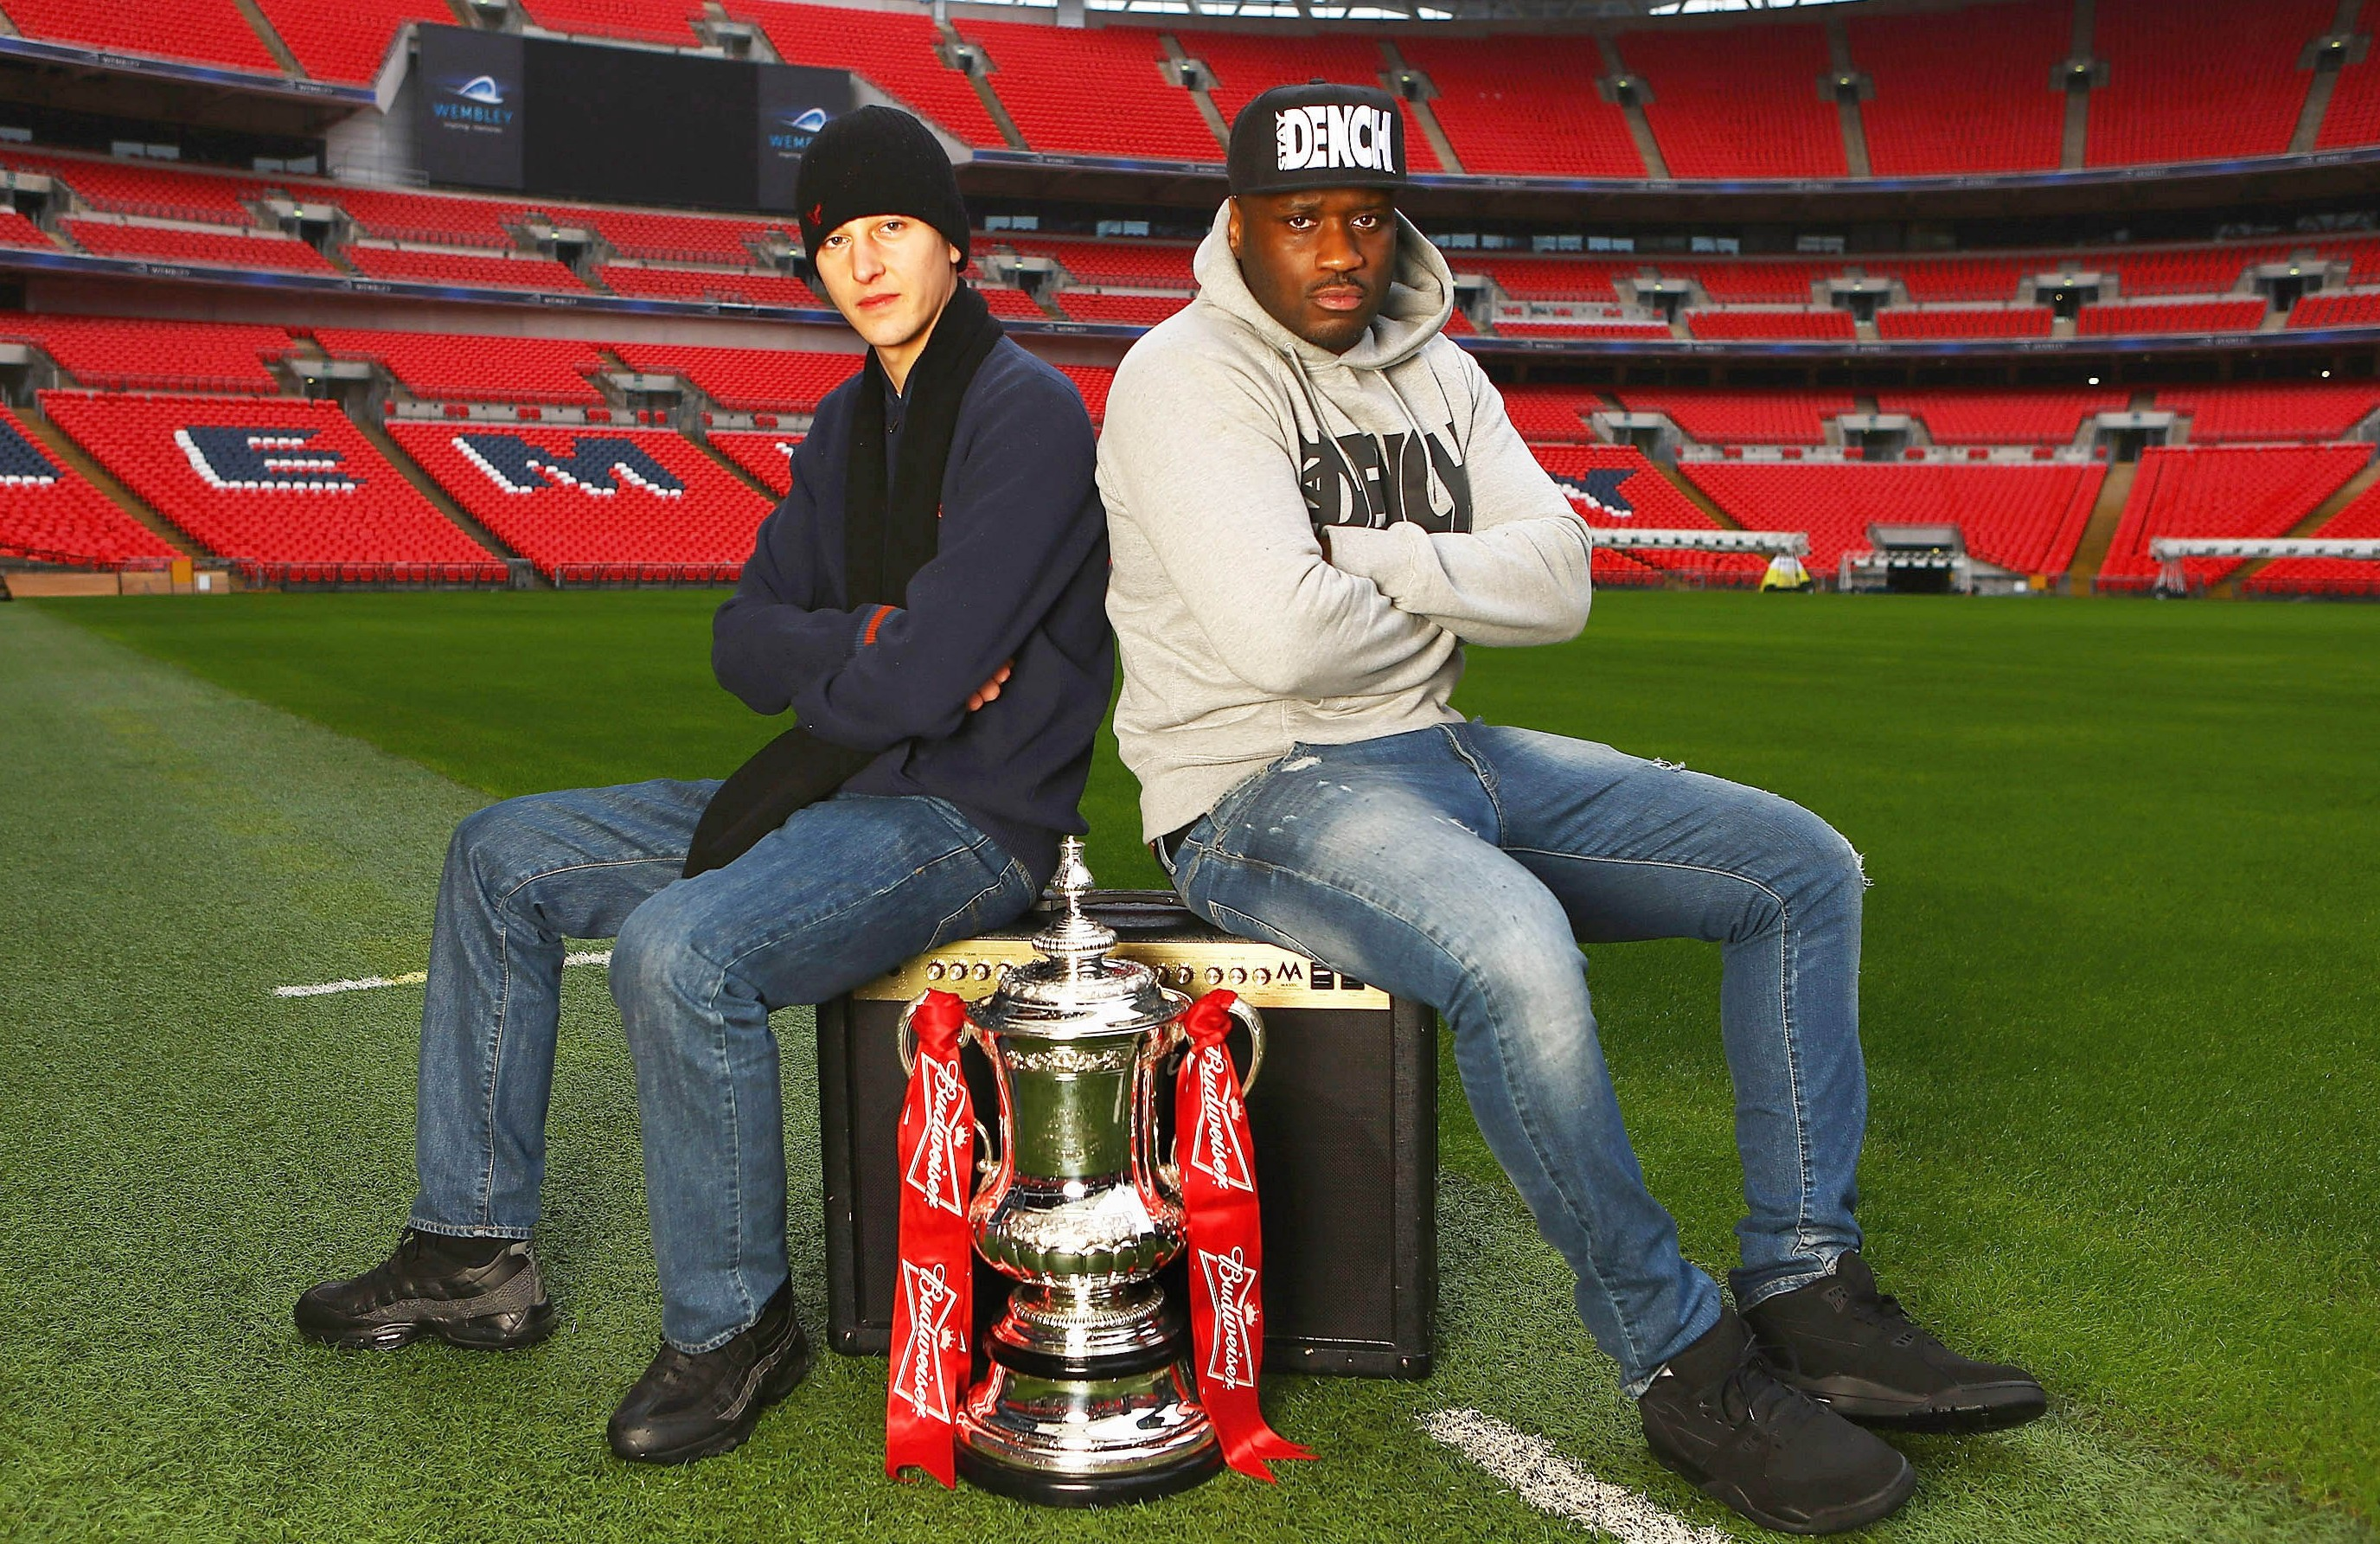 Grime stars battle it out to be new sound of FA Cup